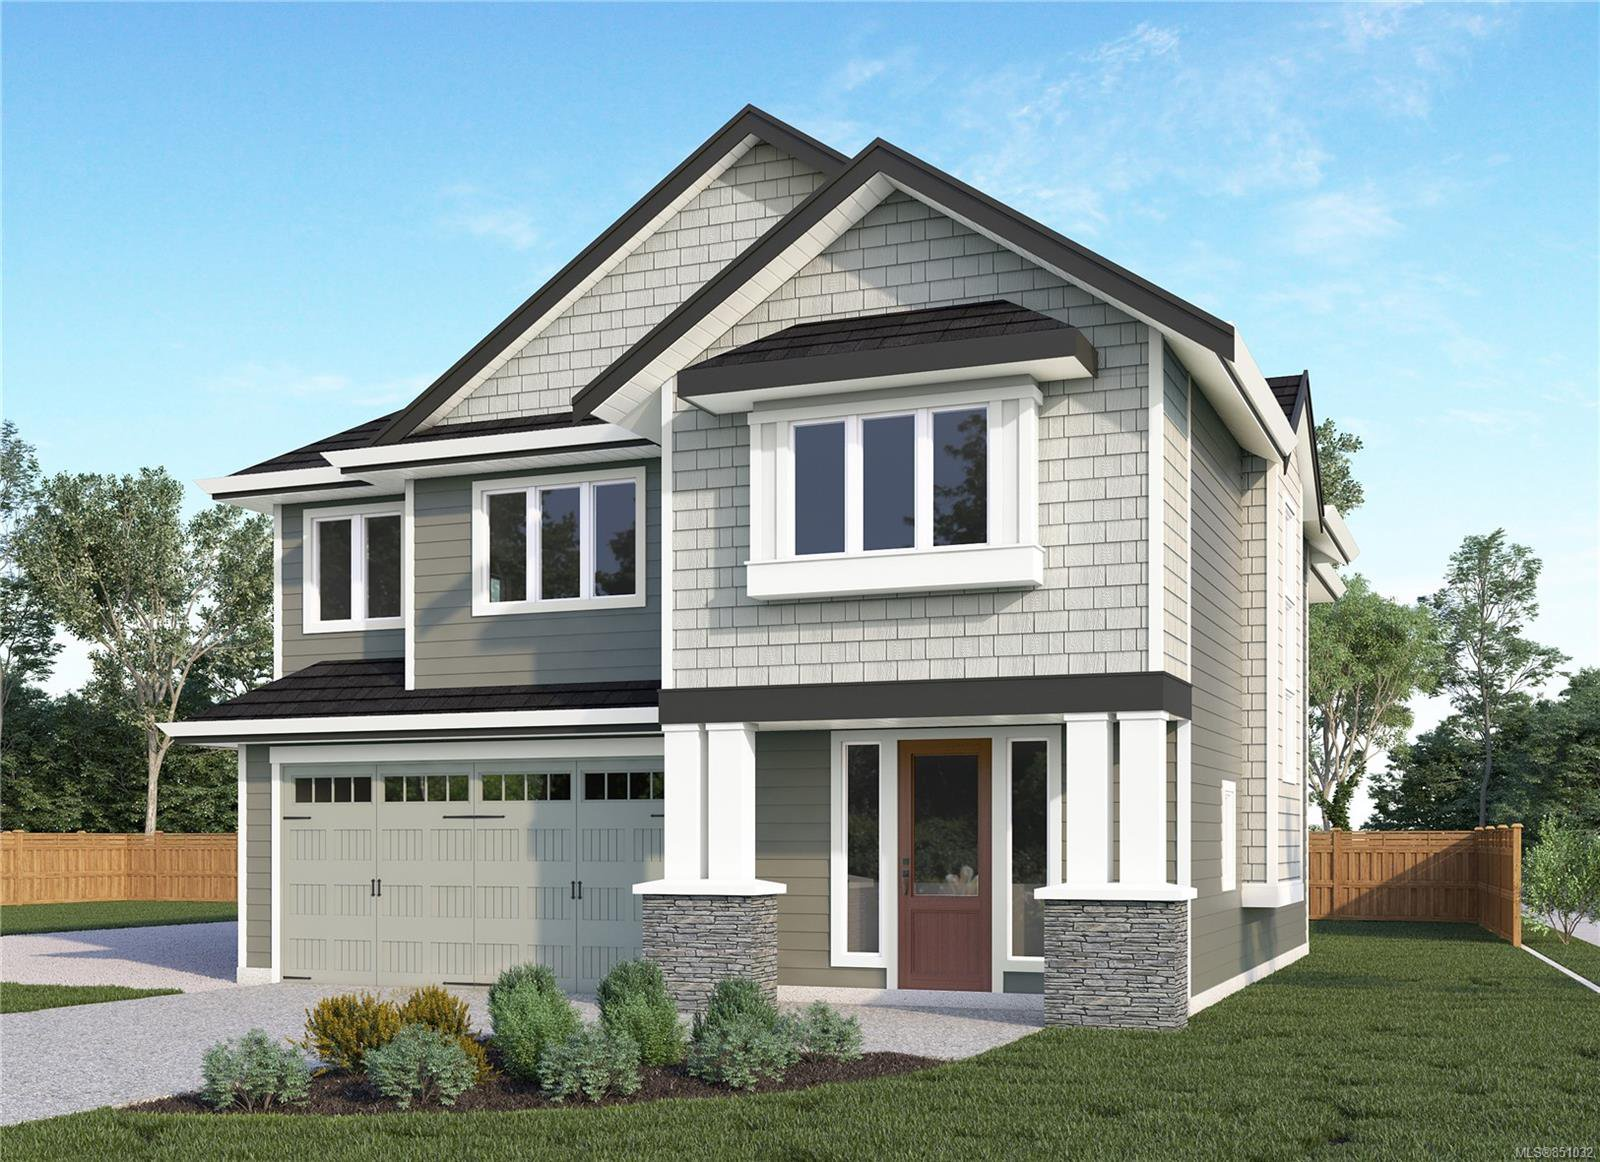 Main Photo: 1173 Smokehouse Cres in : La Happy Valley Single Family Detached for sale (Langford)  : MLS®# 851032